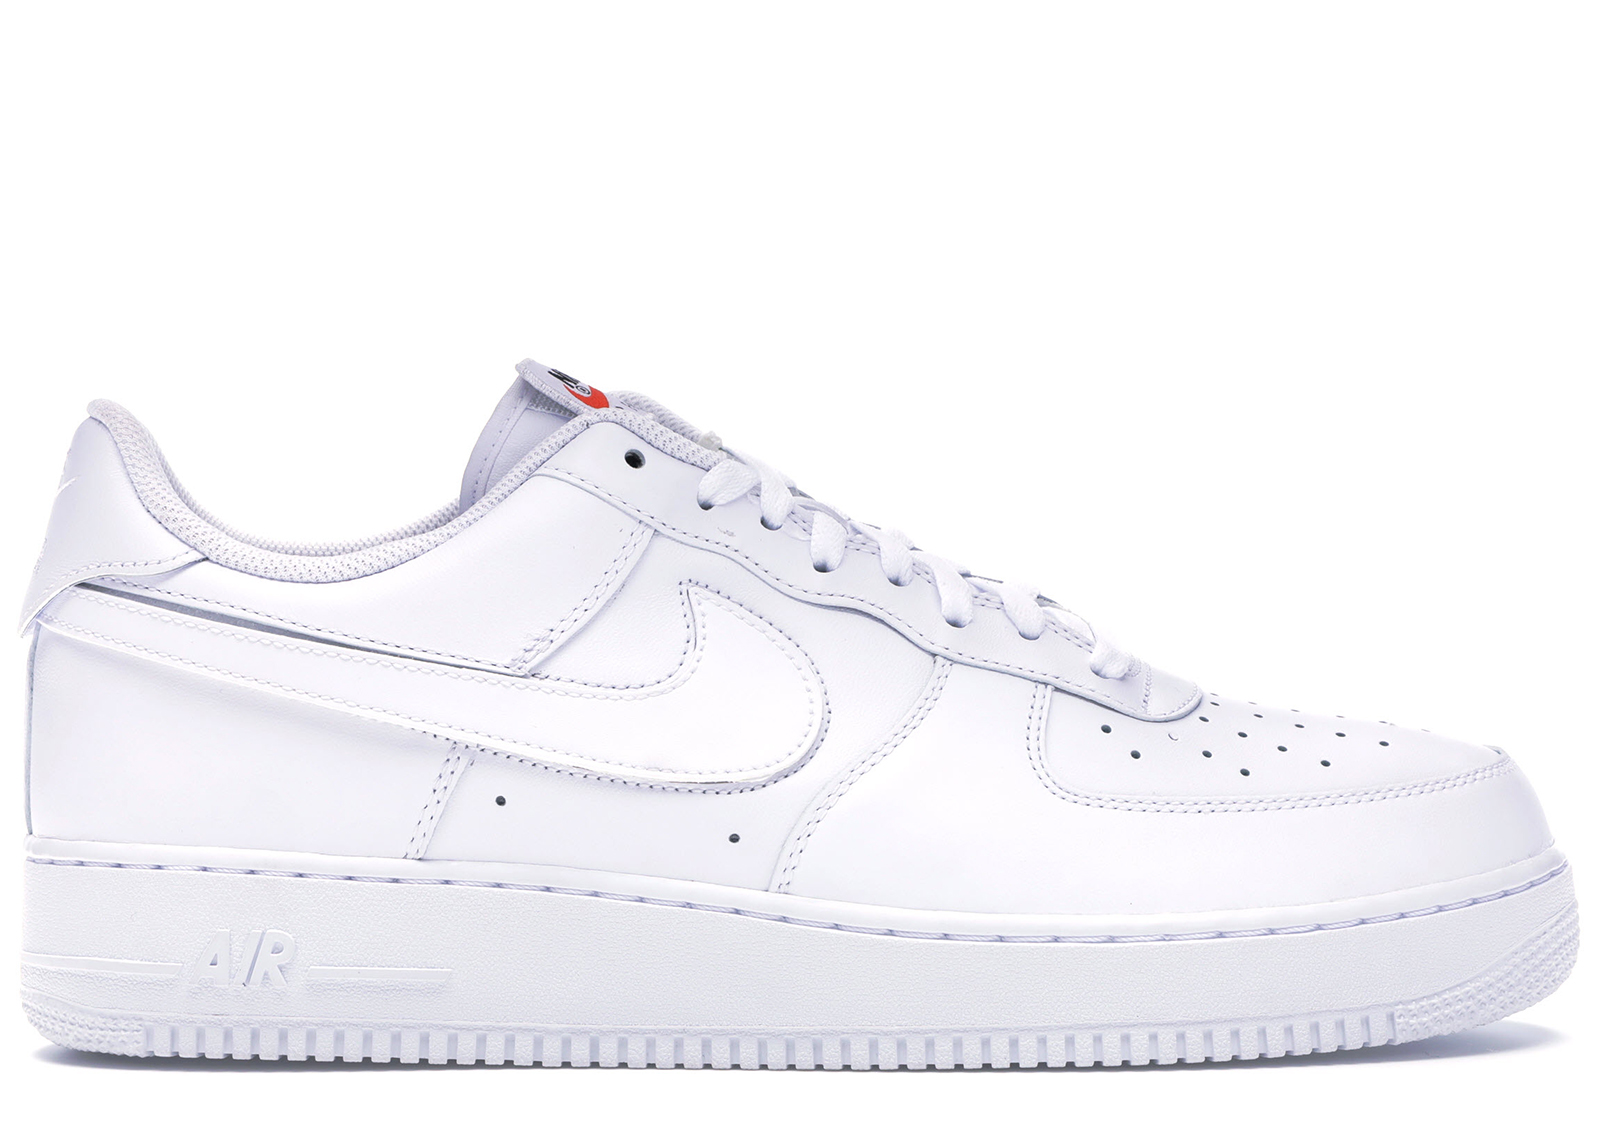 Nike Air Force 1 Low Swoosh Pack All-Star 2018 (White) - AH8462-102